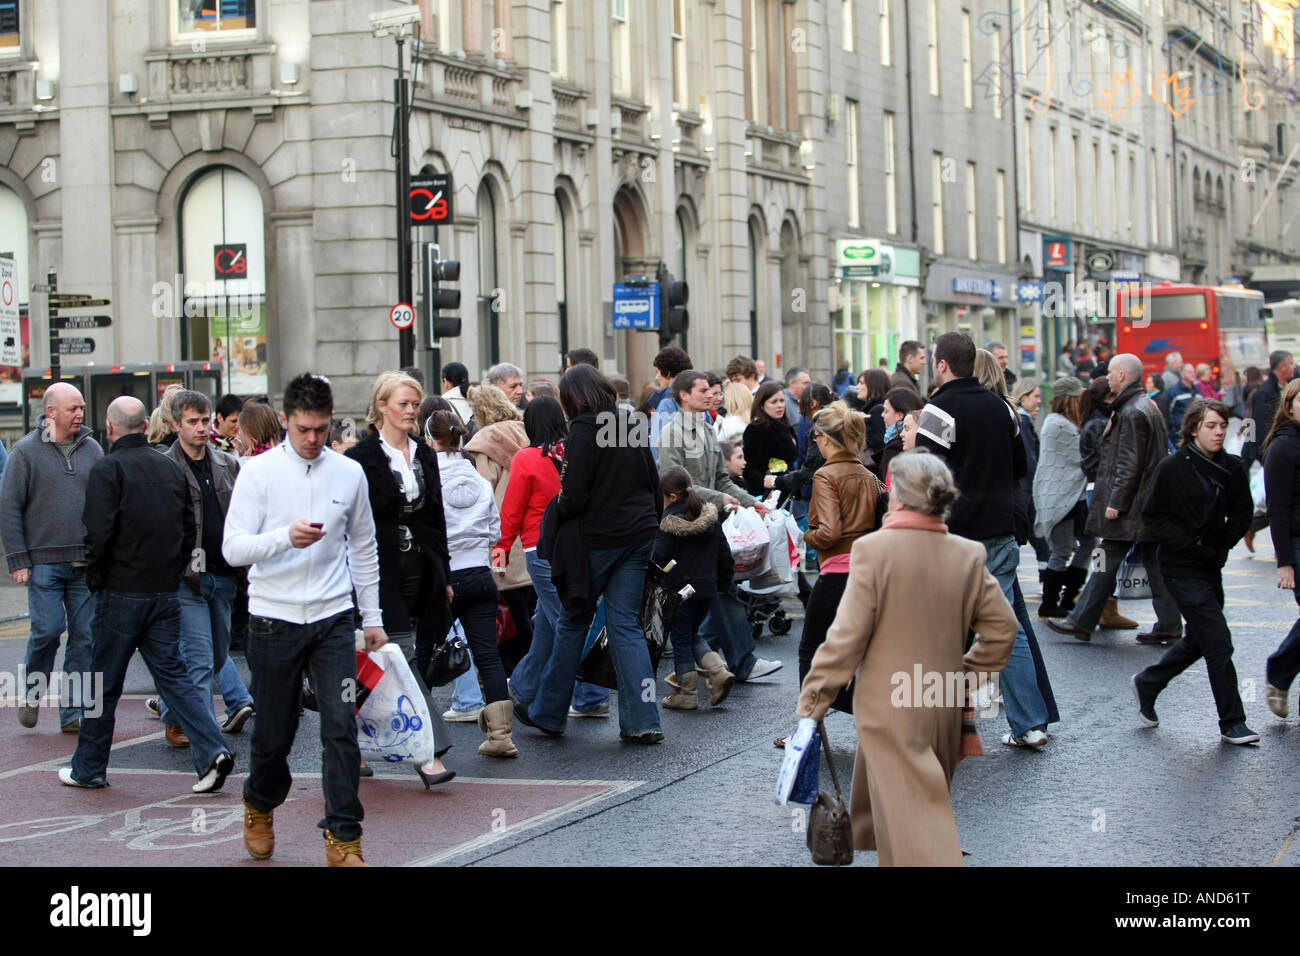 Shoppers in Union Street in the middle of a bustling and busy Aberdeen city centre, Scotland, UK - Stock Image